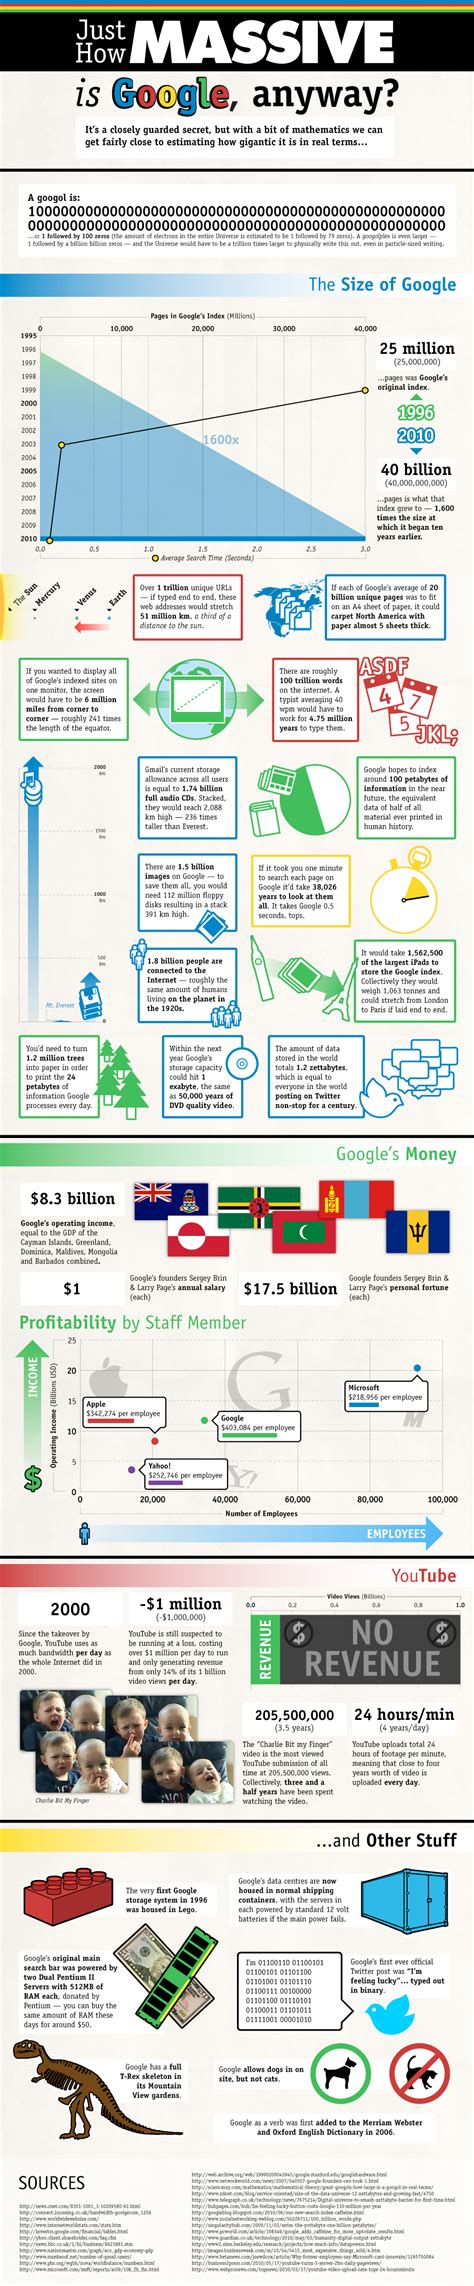 google images numbers infographic just how massive is google anyway google